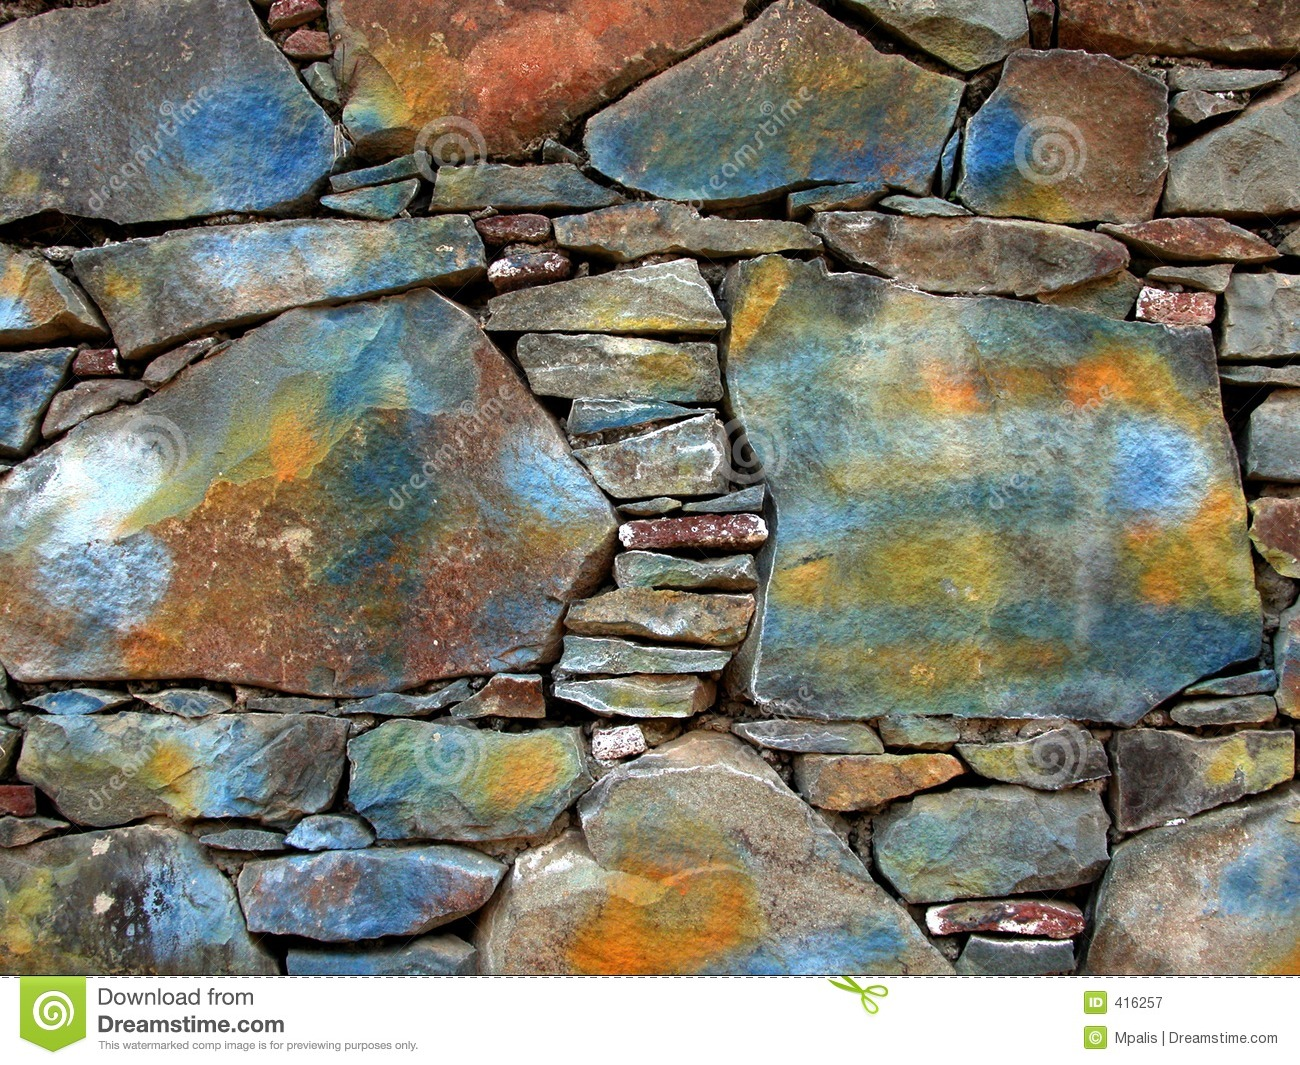 painted stone wall stock image image of bricks rocky 416257. Black Bedroom Furniture Sets. Home Design Ideas